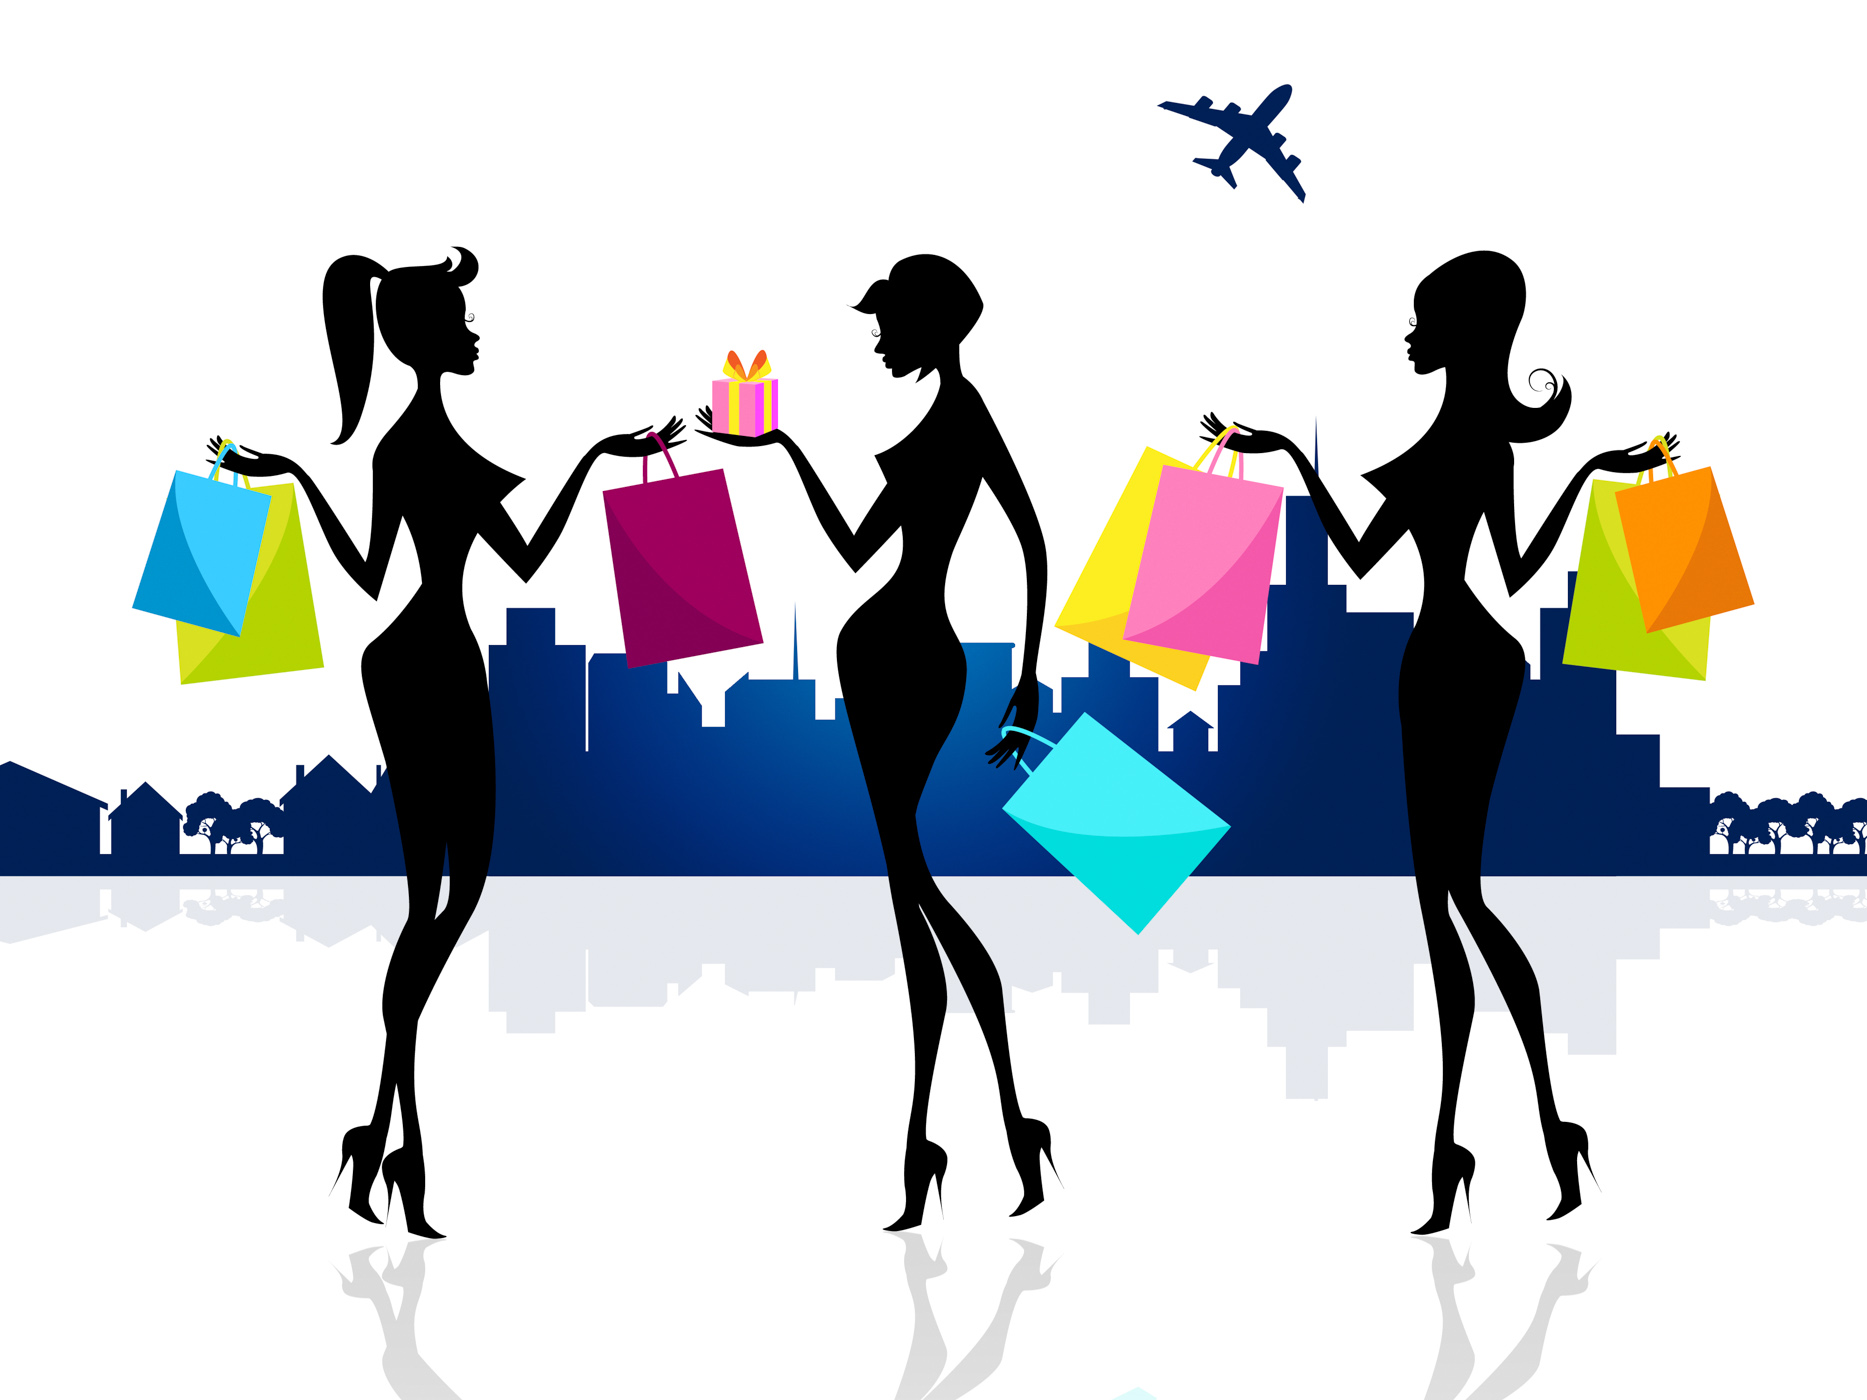 Shopping shopper shows retail sales and adults photo